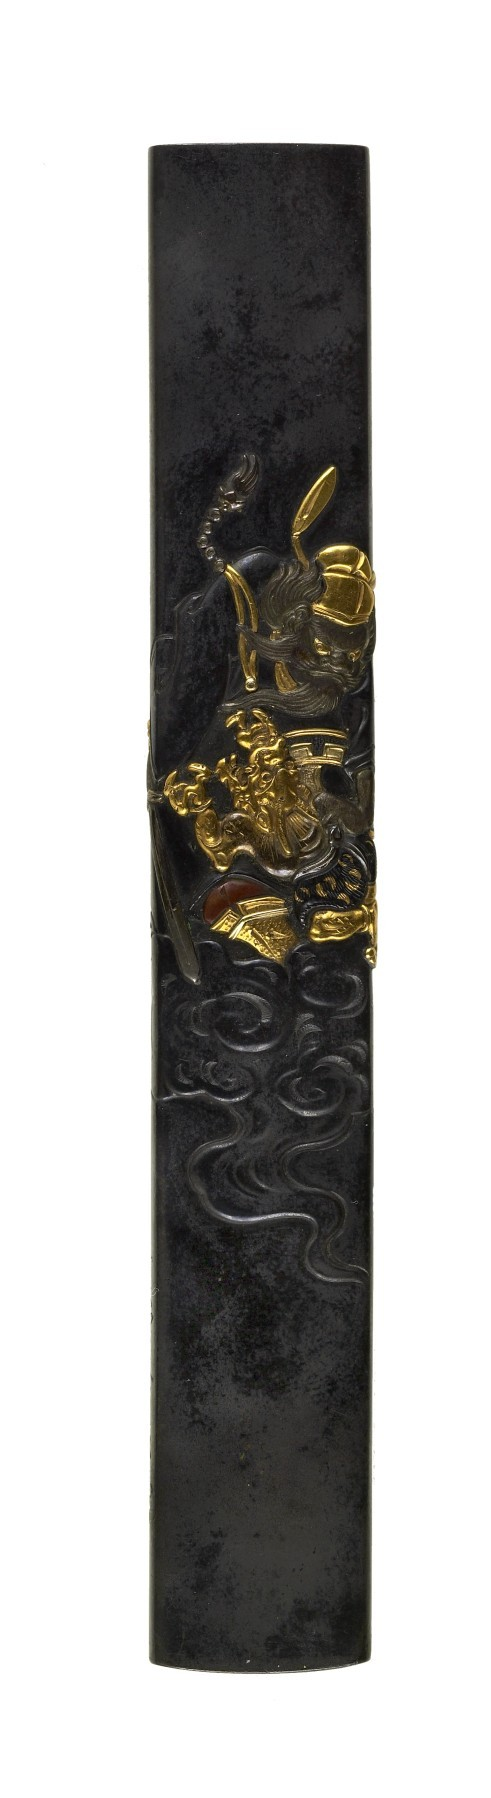 Kozuka with Shôki the Demon Queller